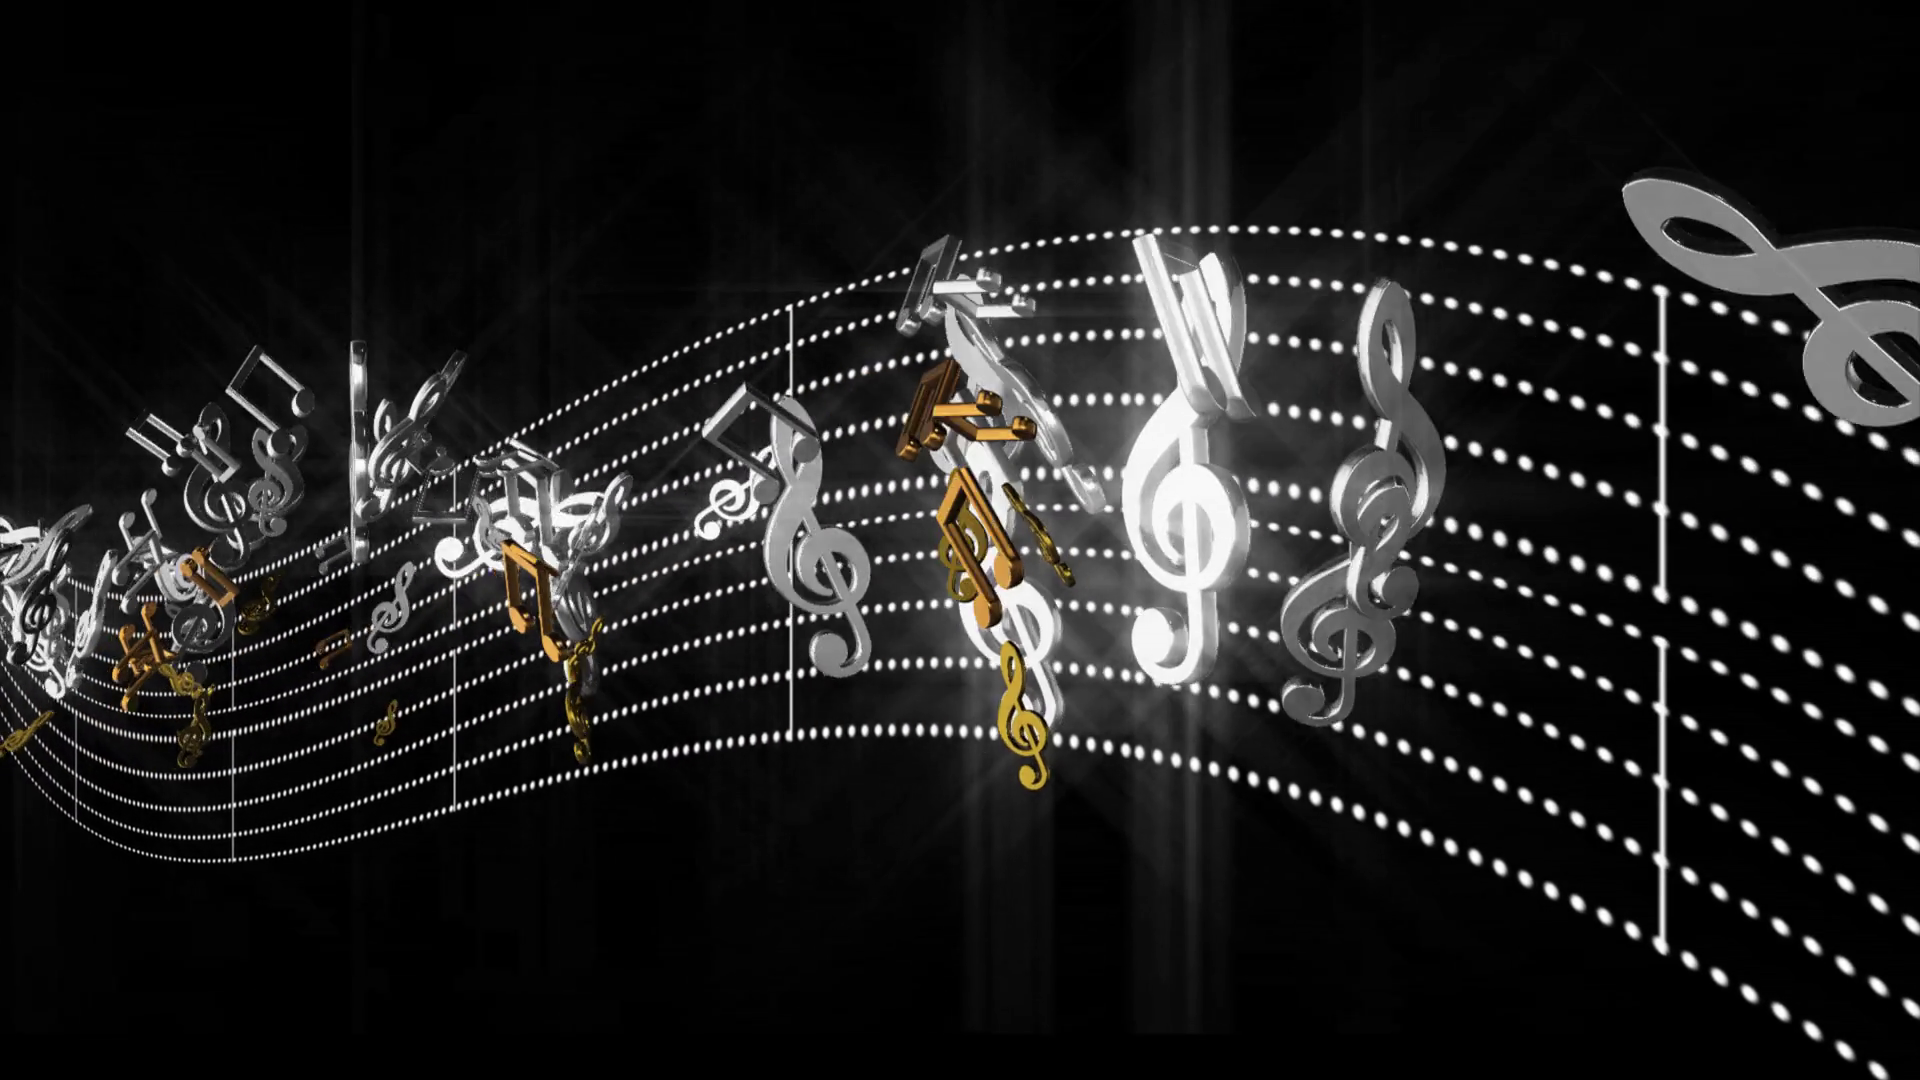 3d Jazz Music Wallpapers: Mysteryofevil